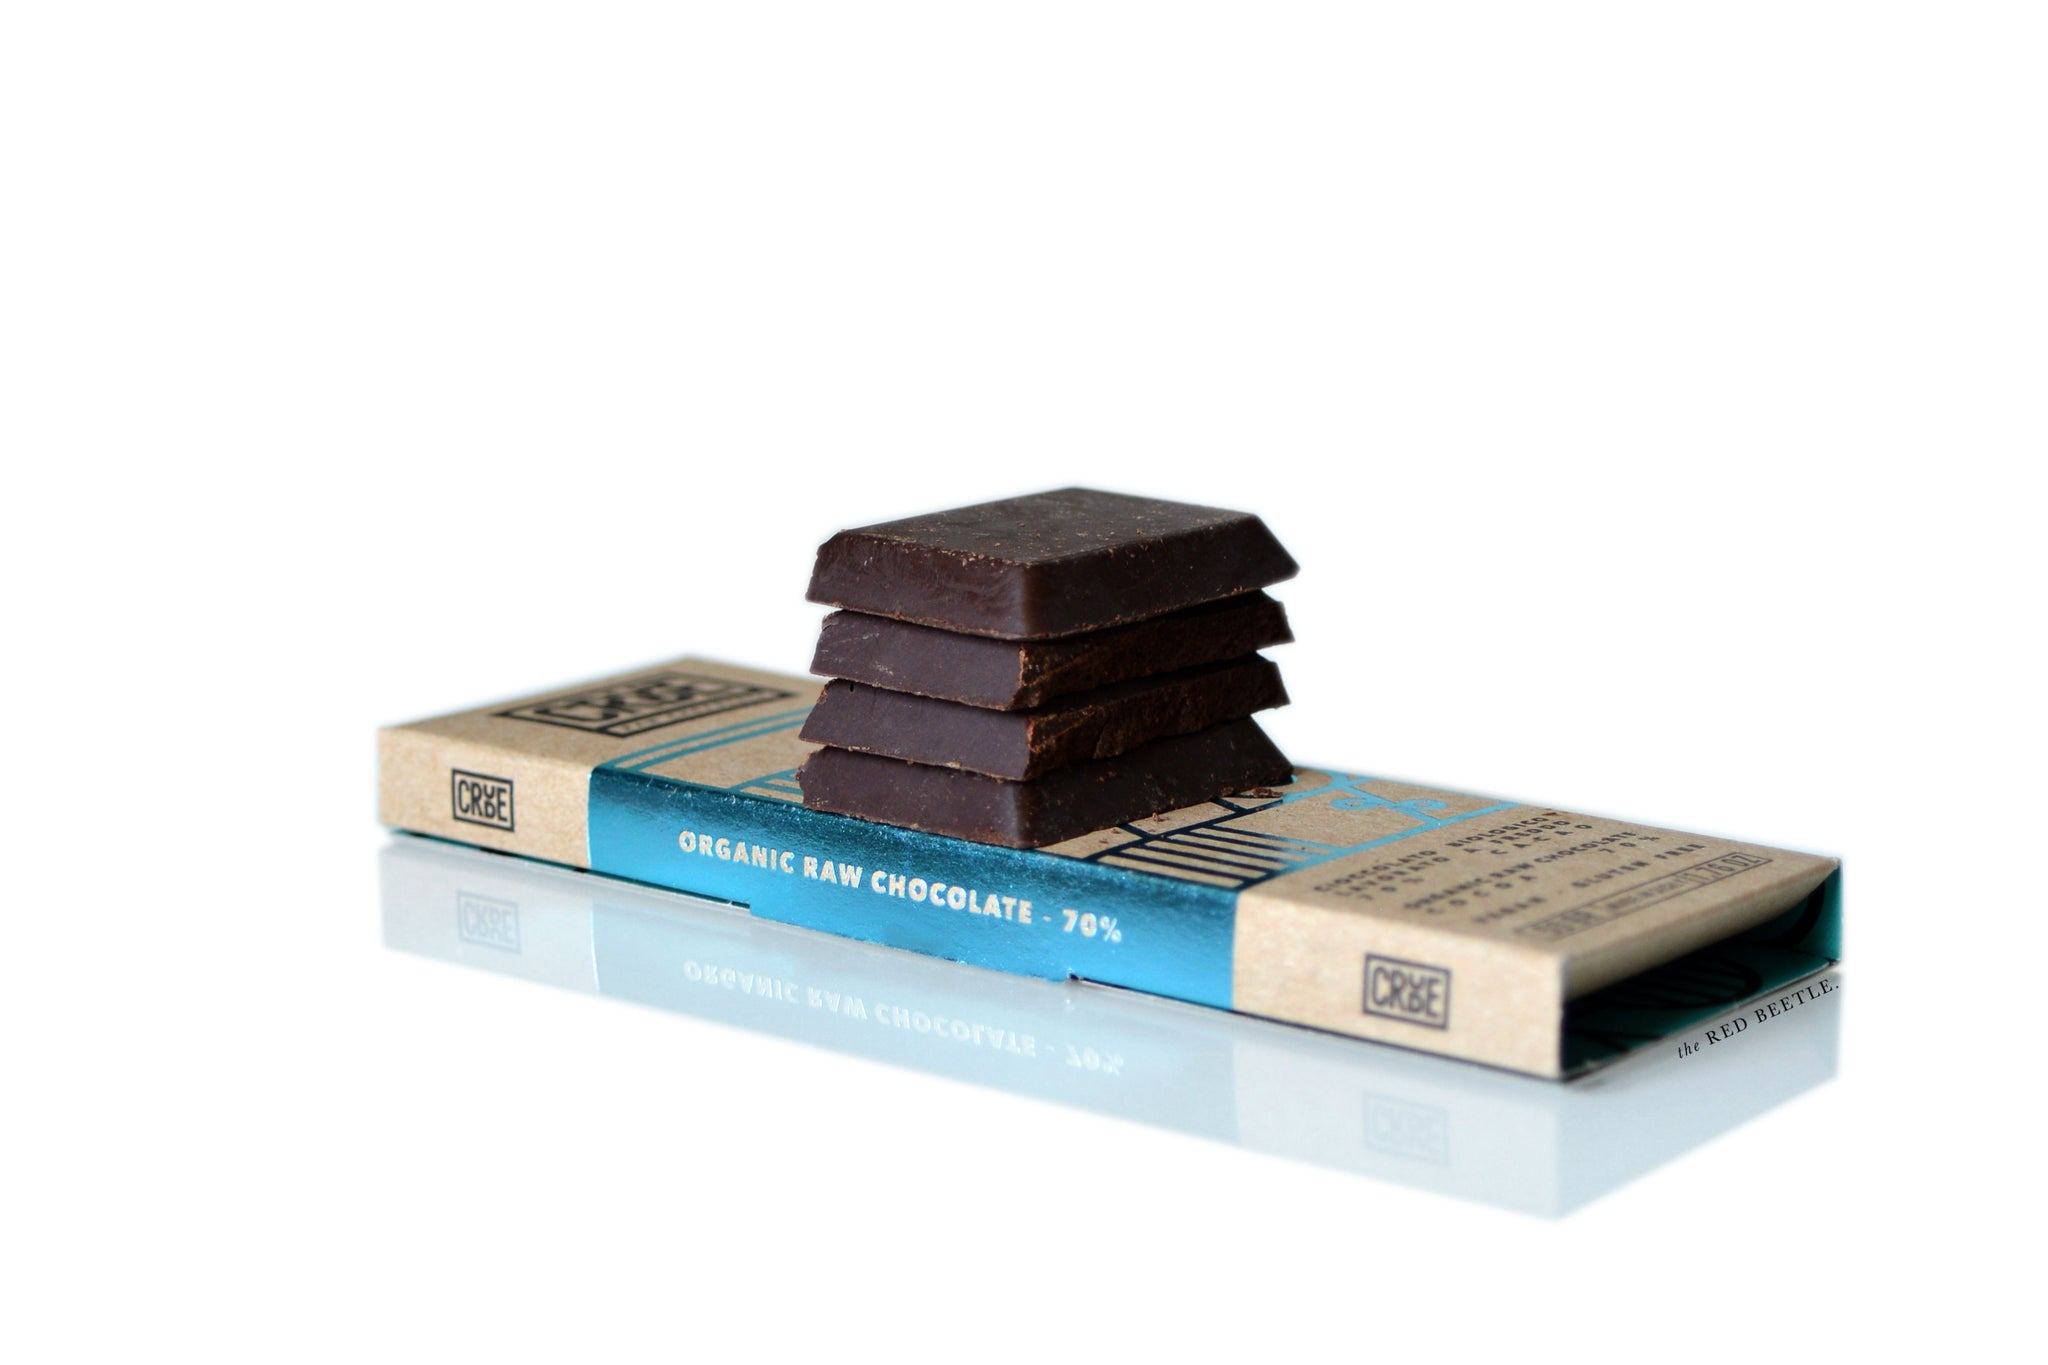 Crude by Sabadì Raw Chocolate 70% cacao with coconut flower sugar | Vegan & Gluten Free Raw Chocolate